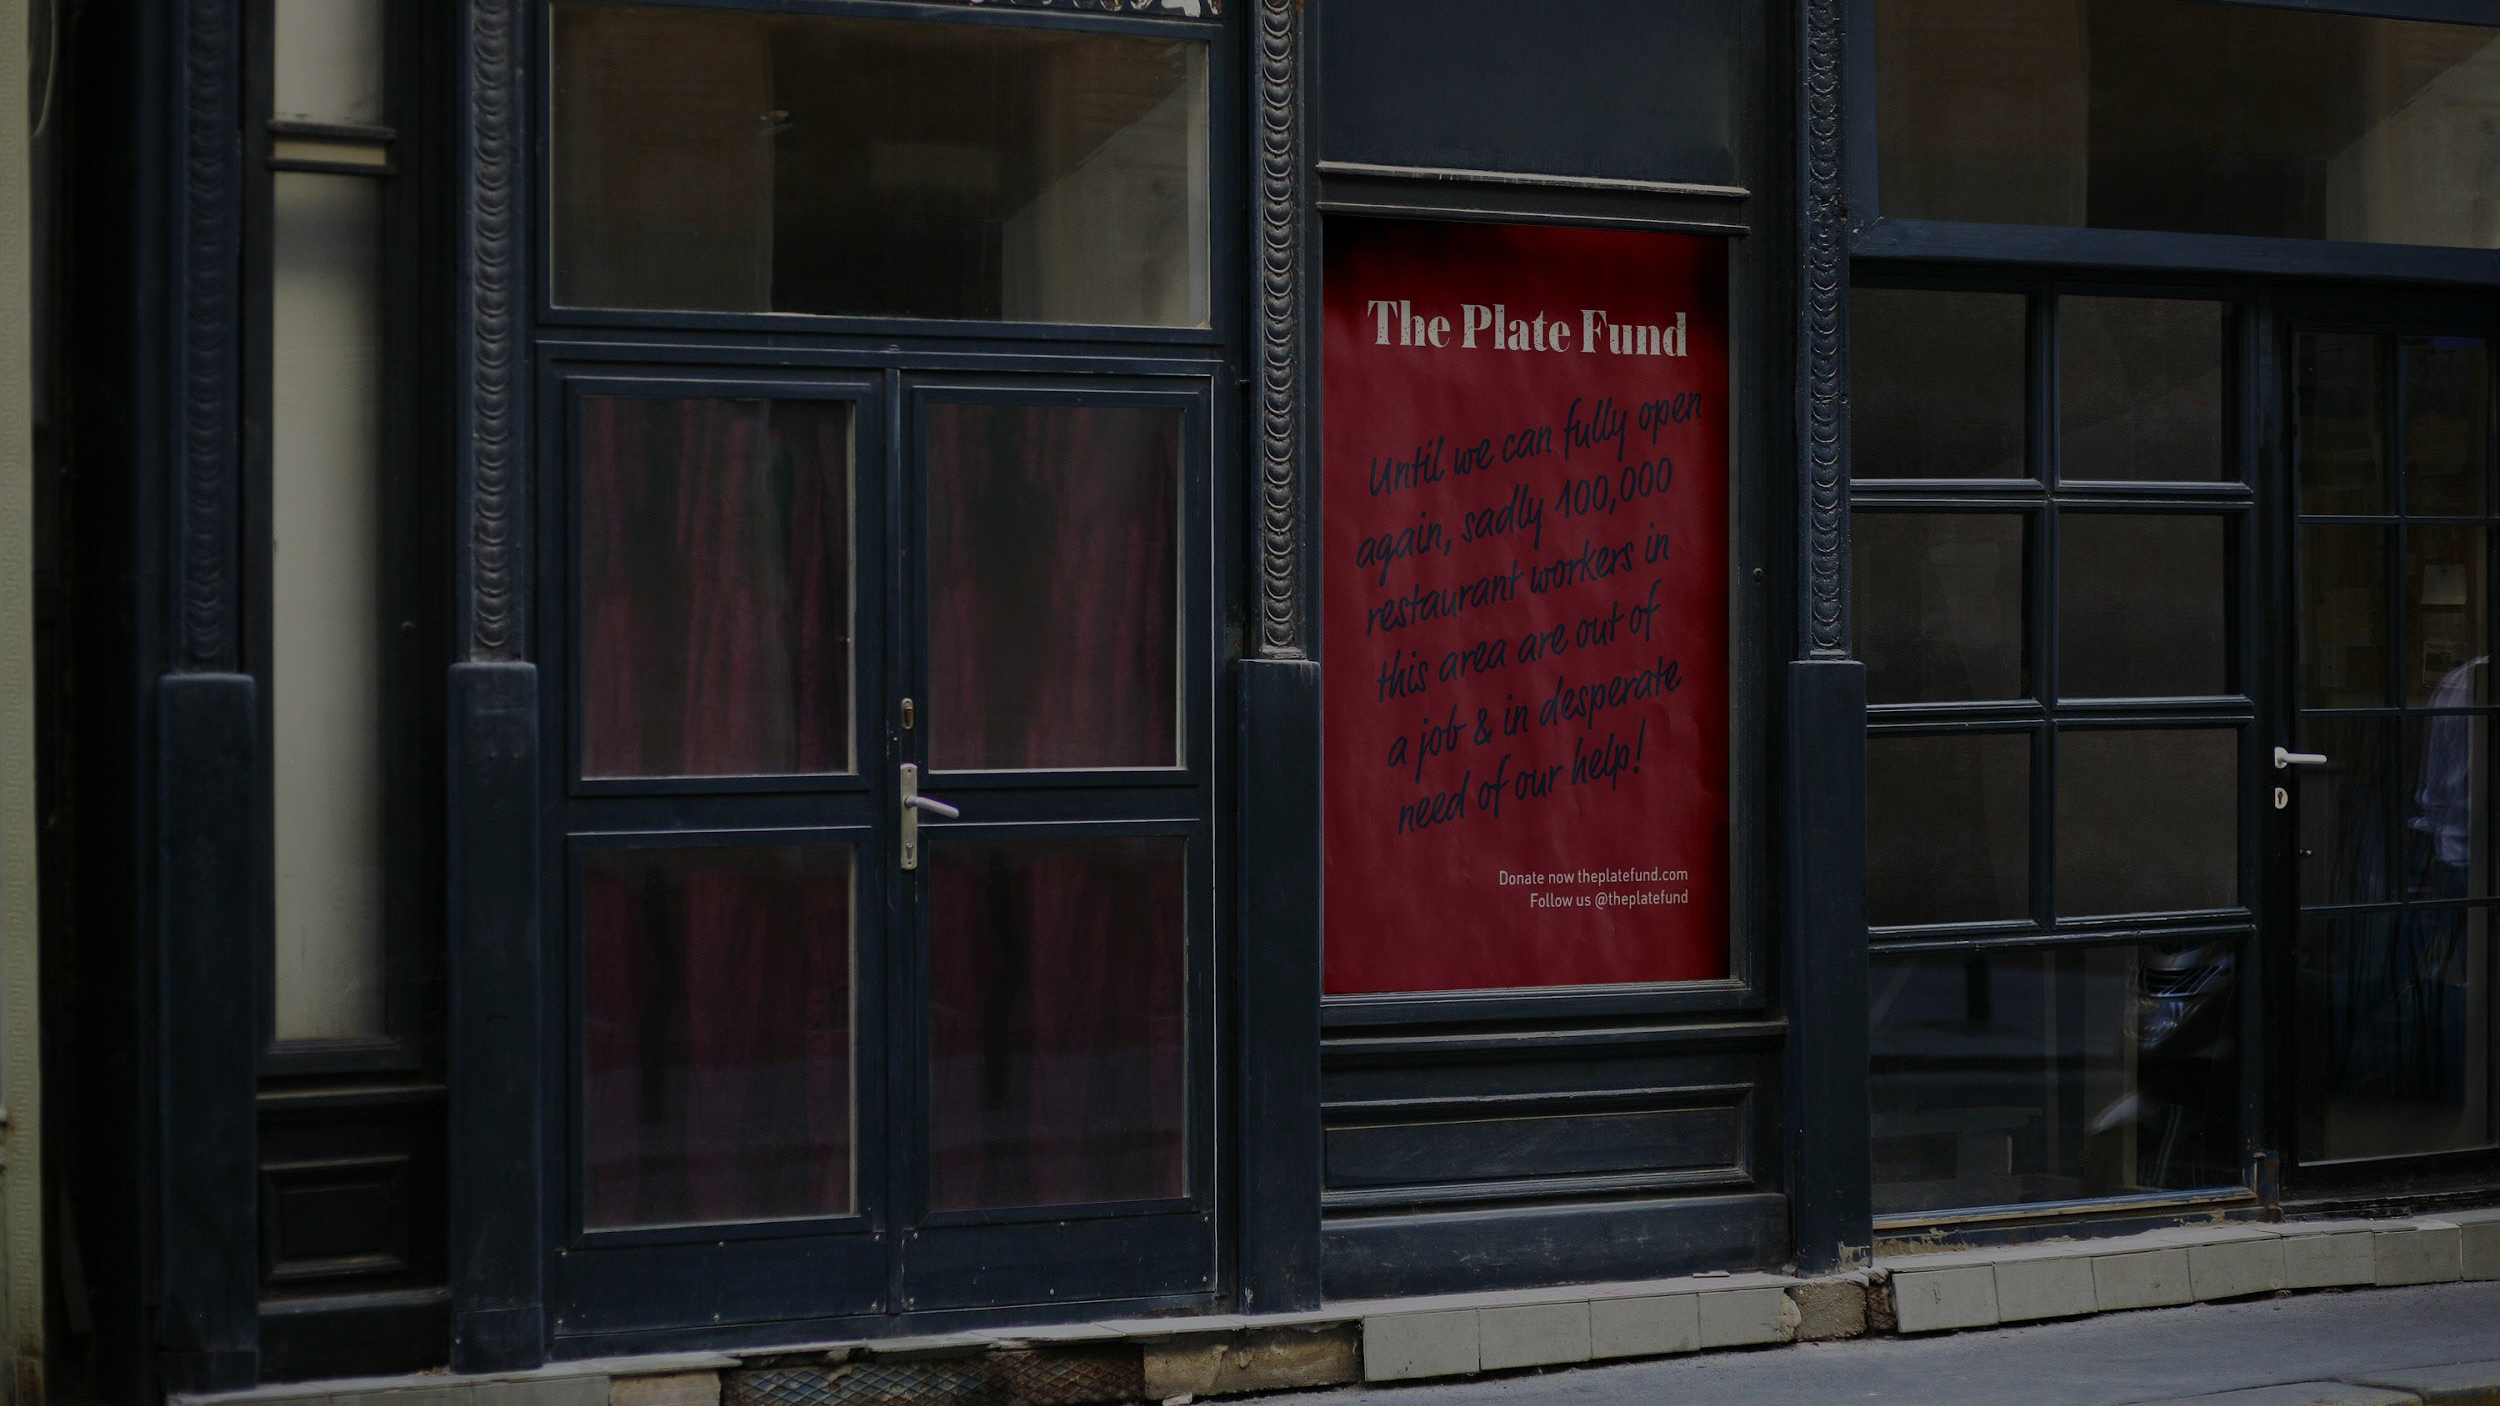 The Plate Fund: It's Our Turn to Serve